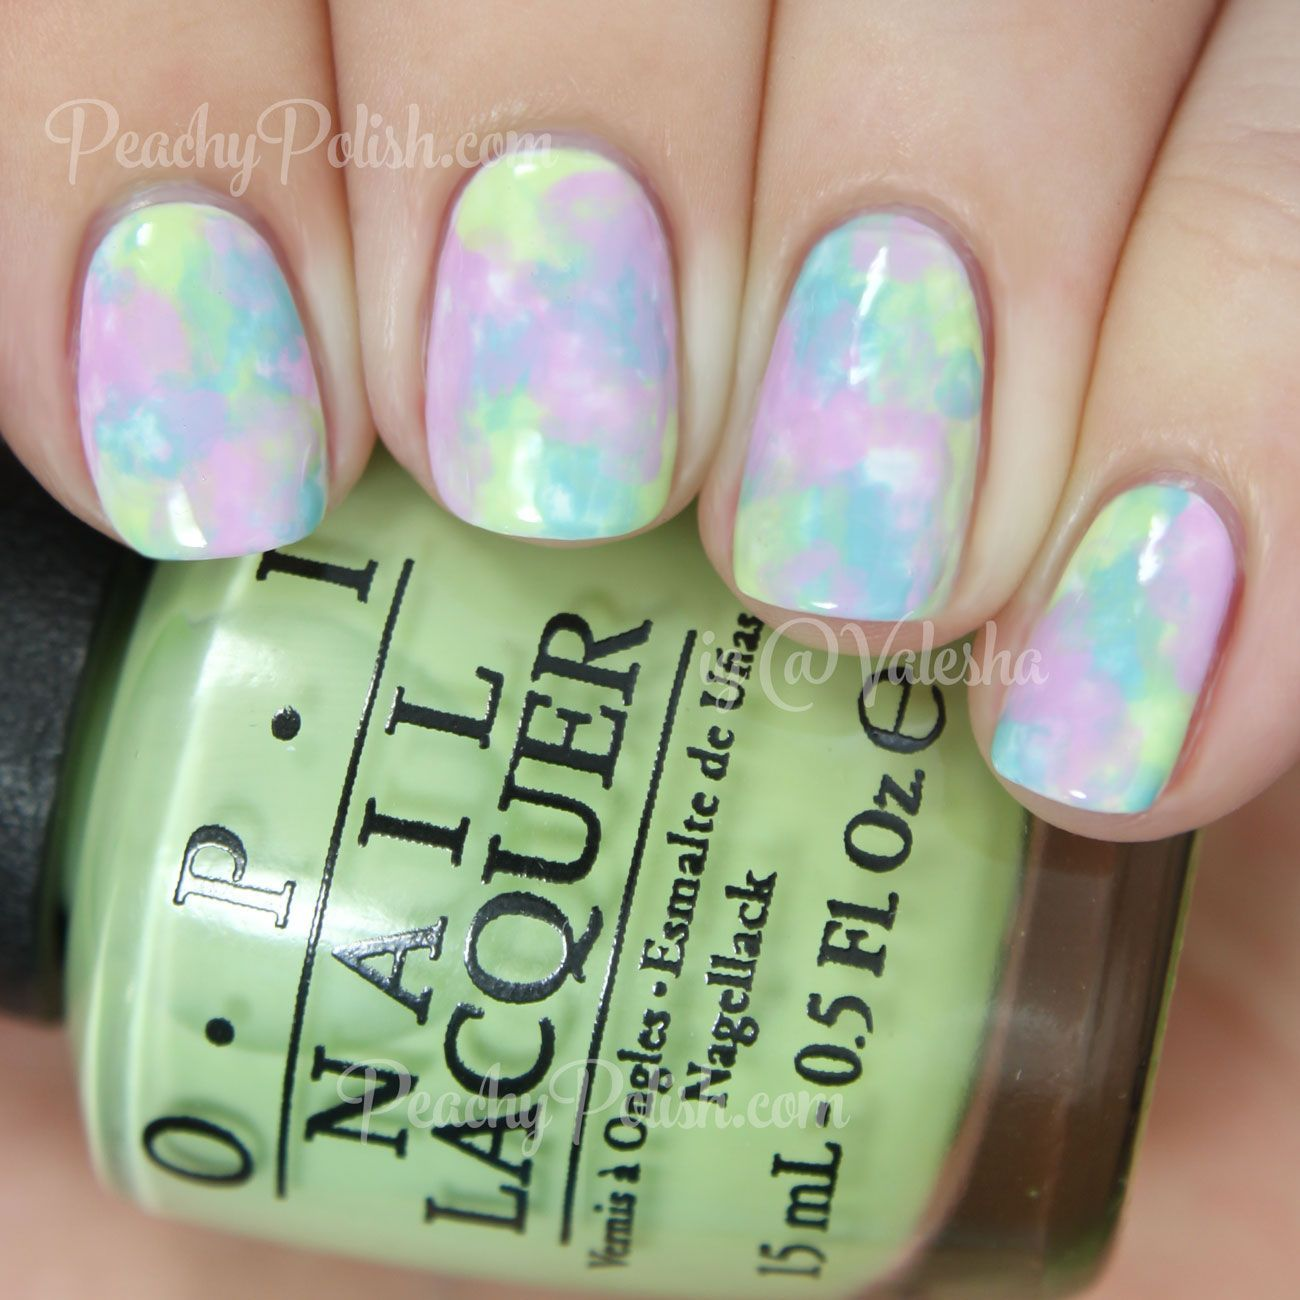 Sally beauty spring trend nail tutorial sallybeautysupplydye